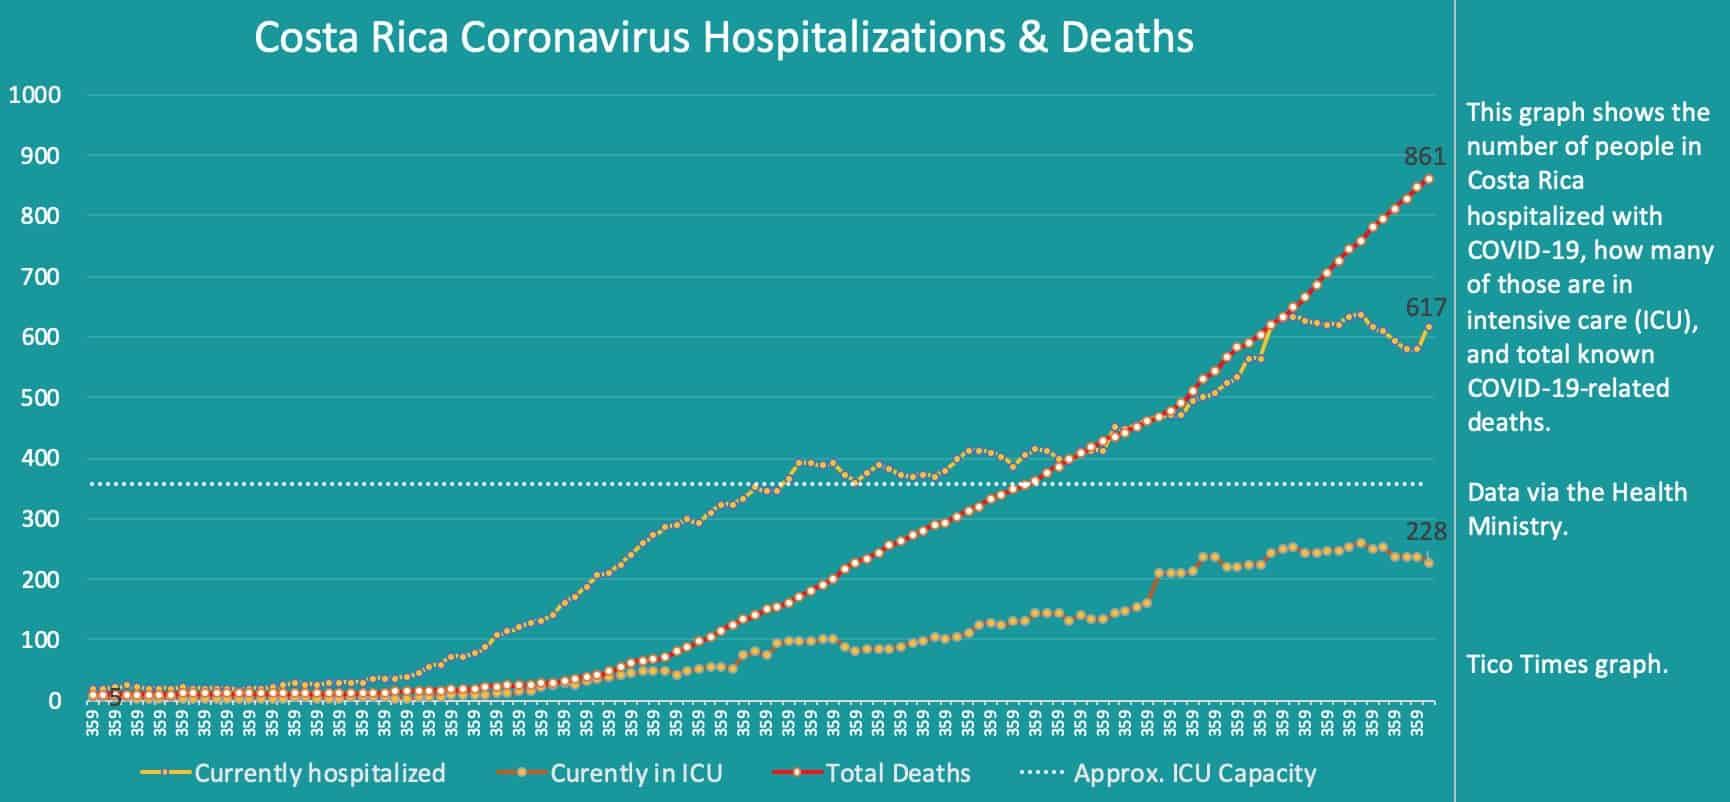 Costa Rica coronavirus hospitalizations and deaths on September 28, 2020